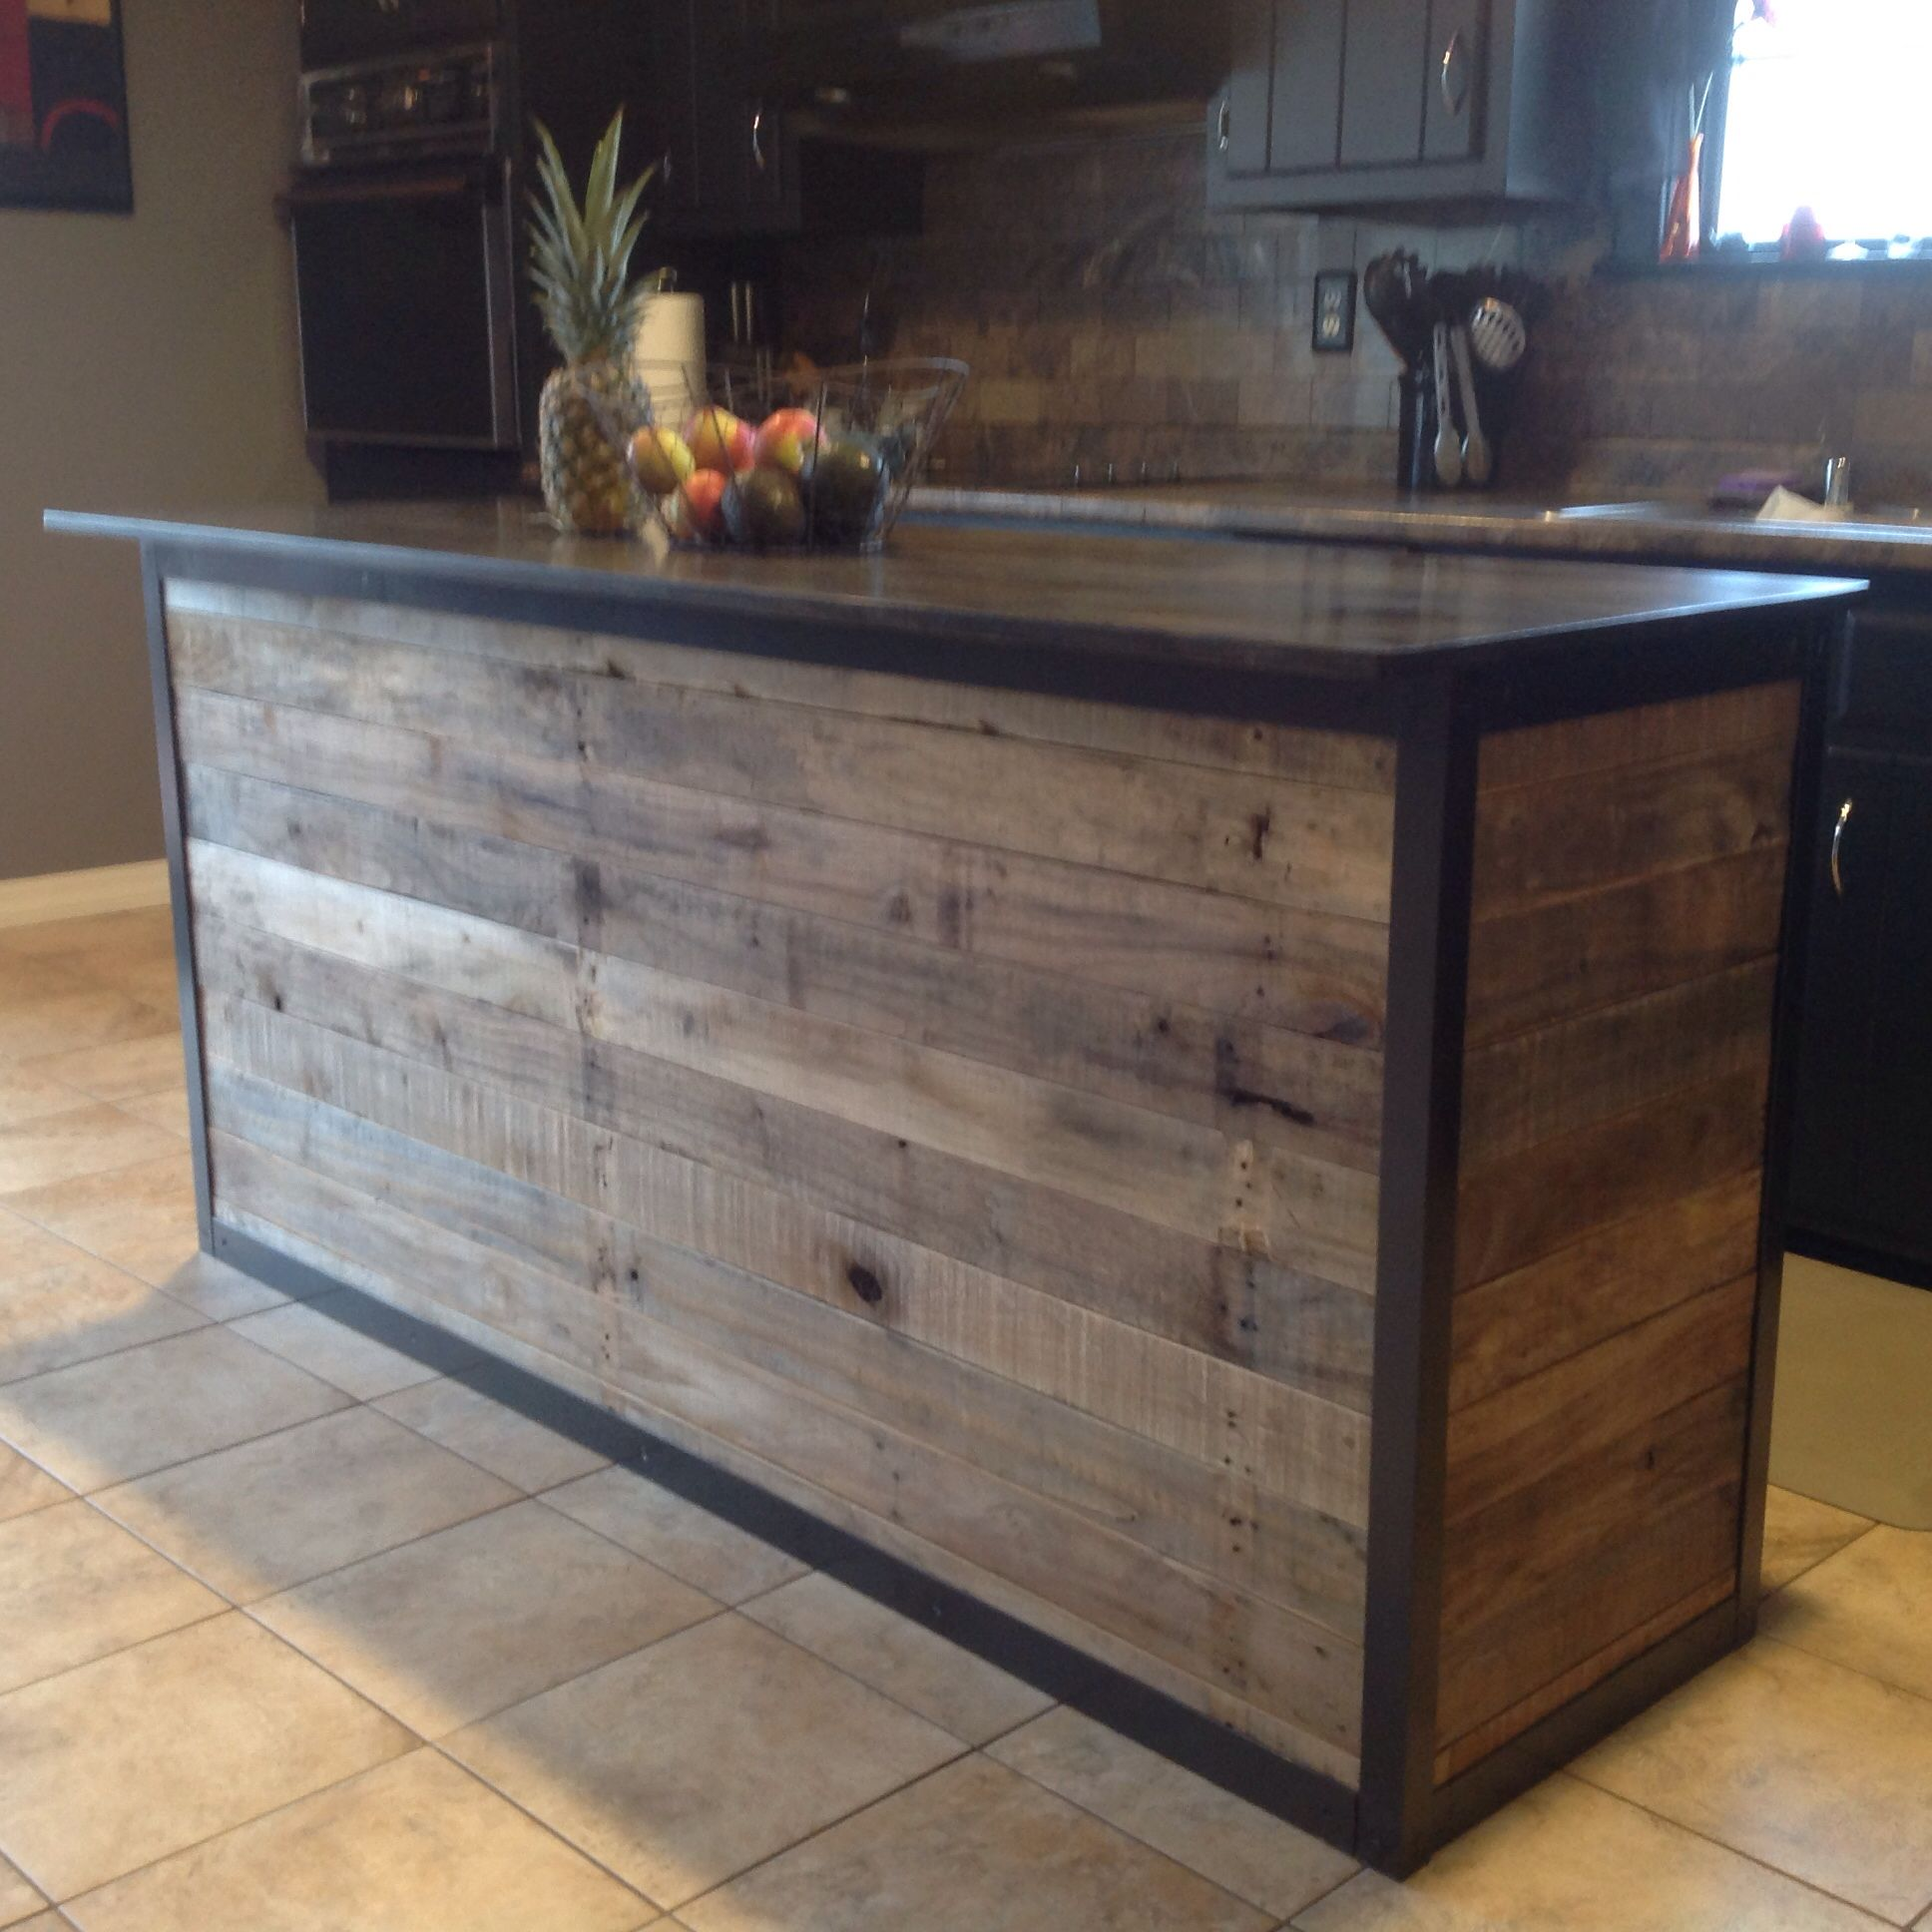 Diy kitchen island made from pallet wood house ideas pinterest diy kitchen island pallet Diy home bar design ideas